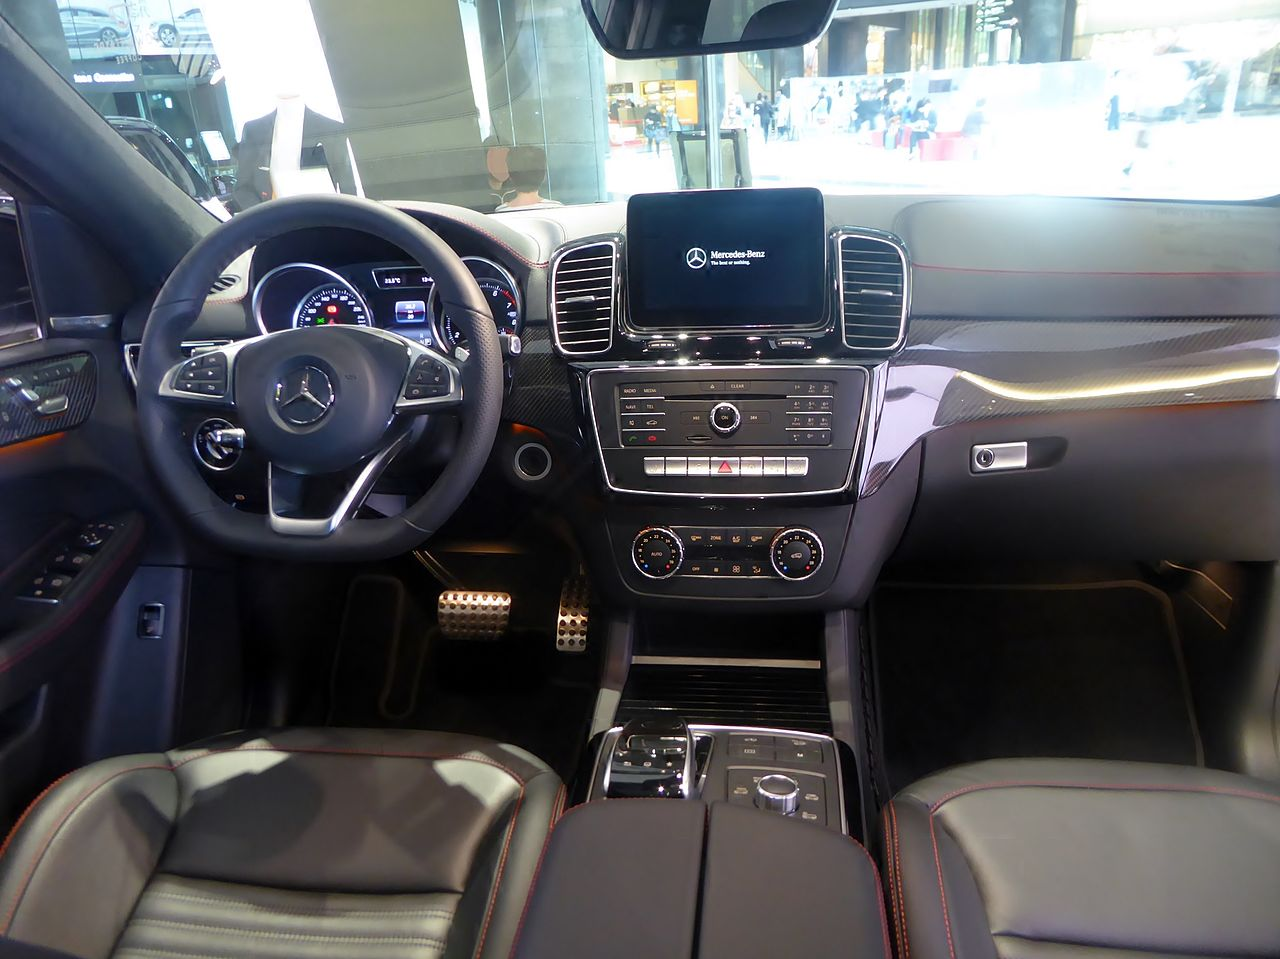 file mercedes amg gle43 4matic coup c292 interior jpg wikimedia commons. Black Bedroom Furniture Sets. Home Design Ideas